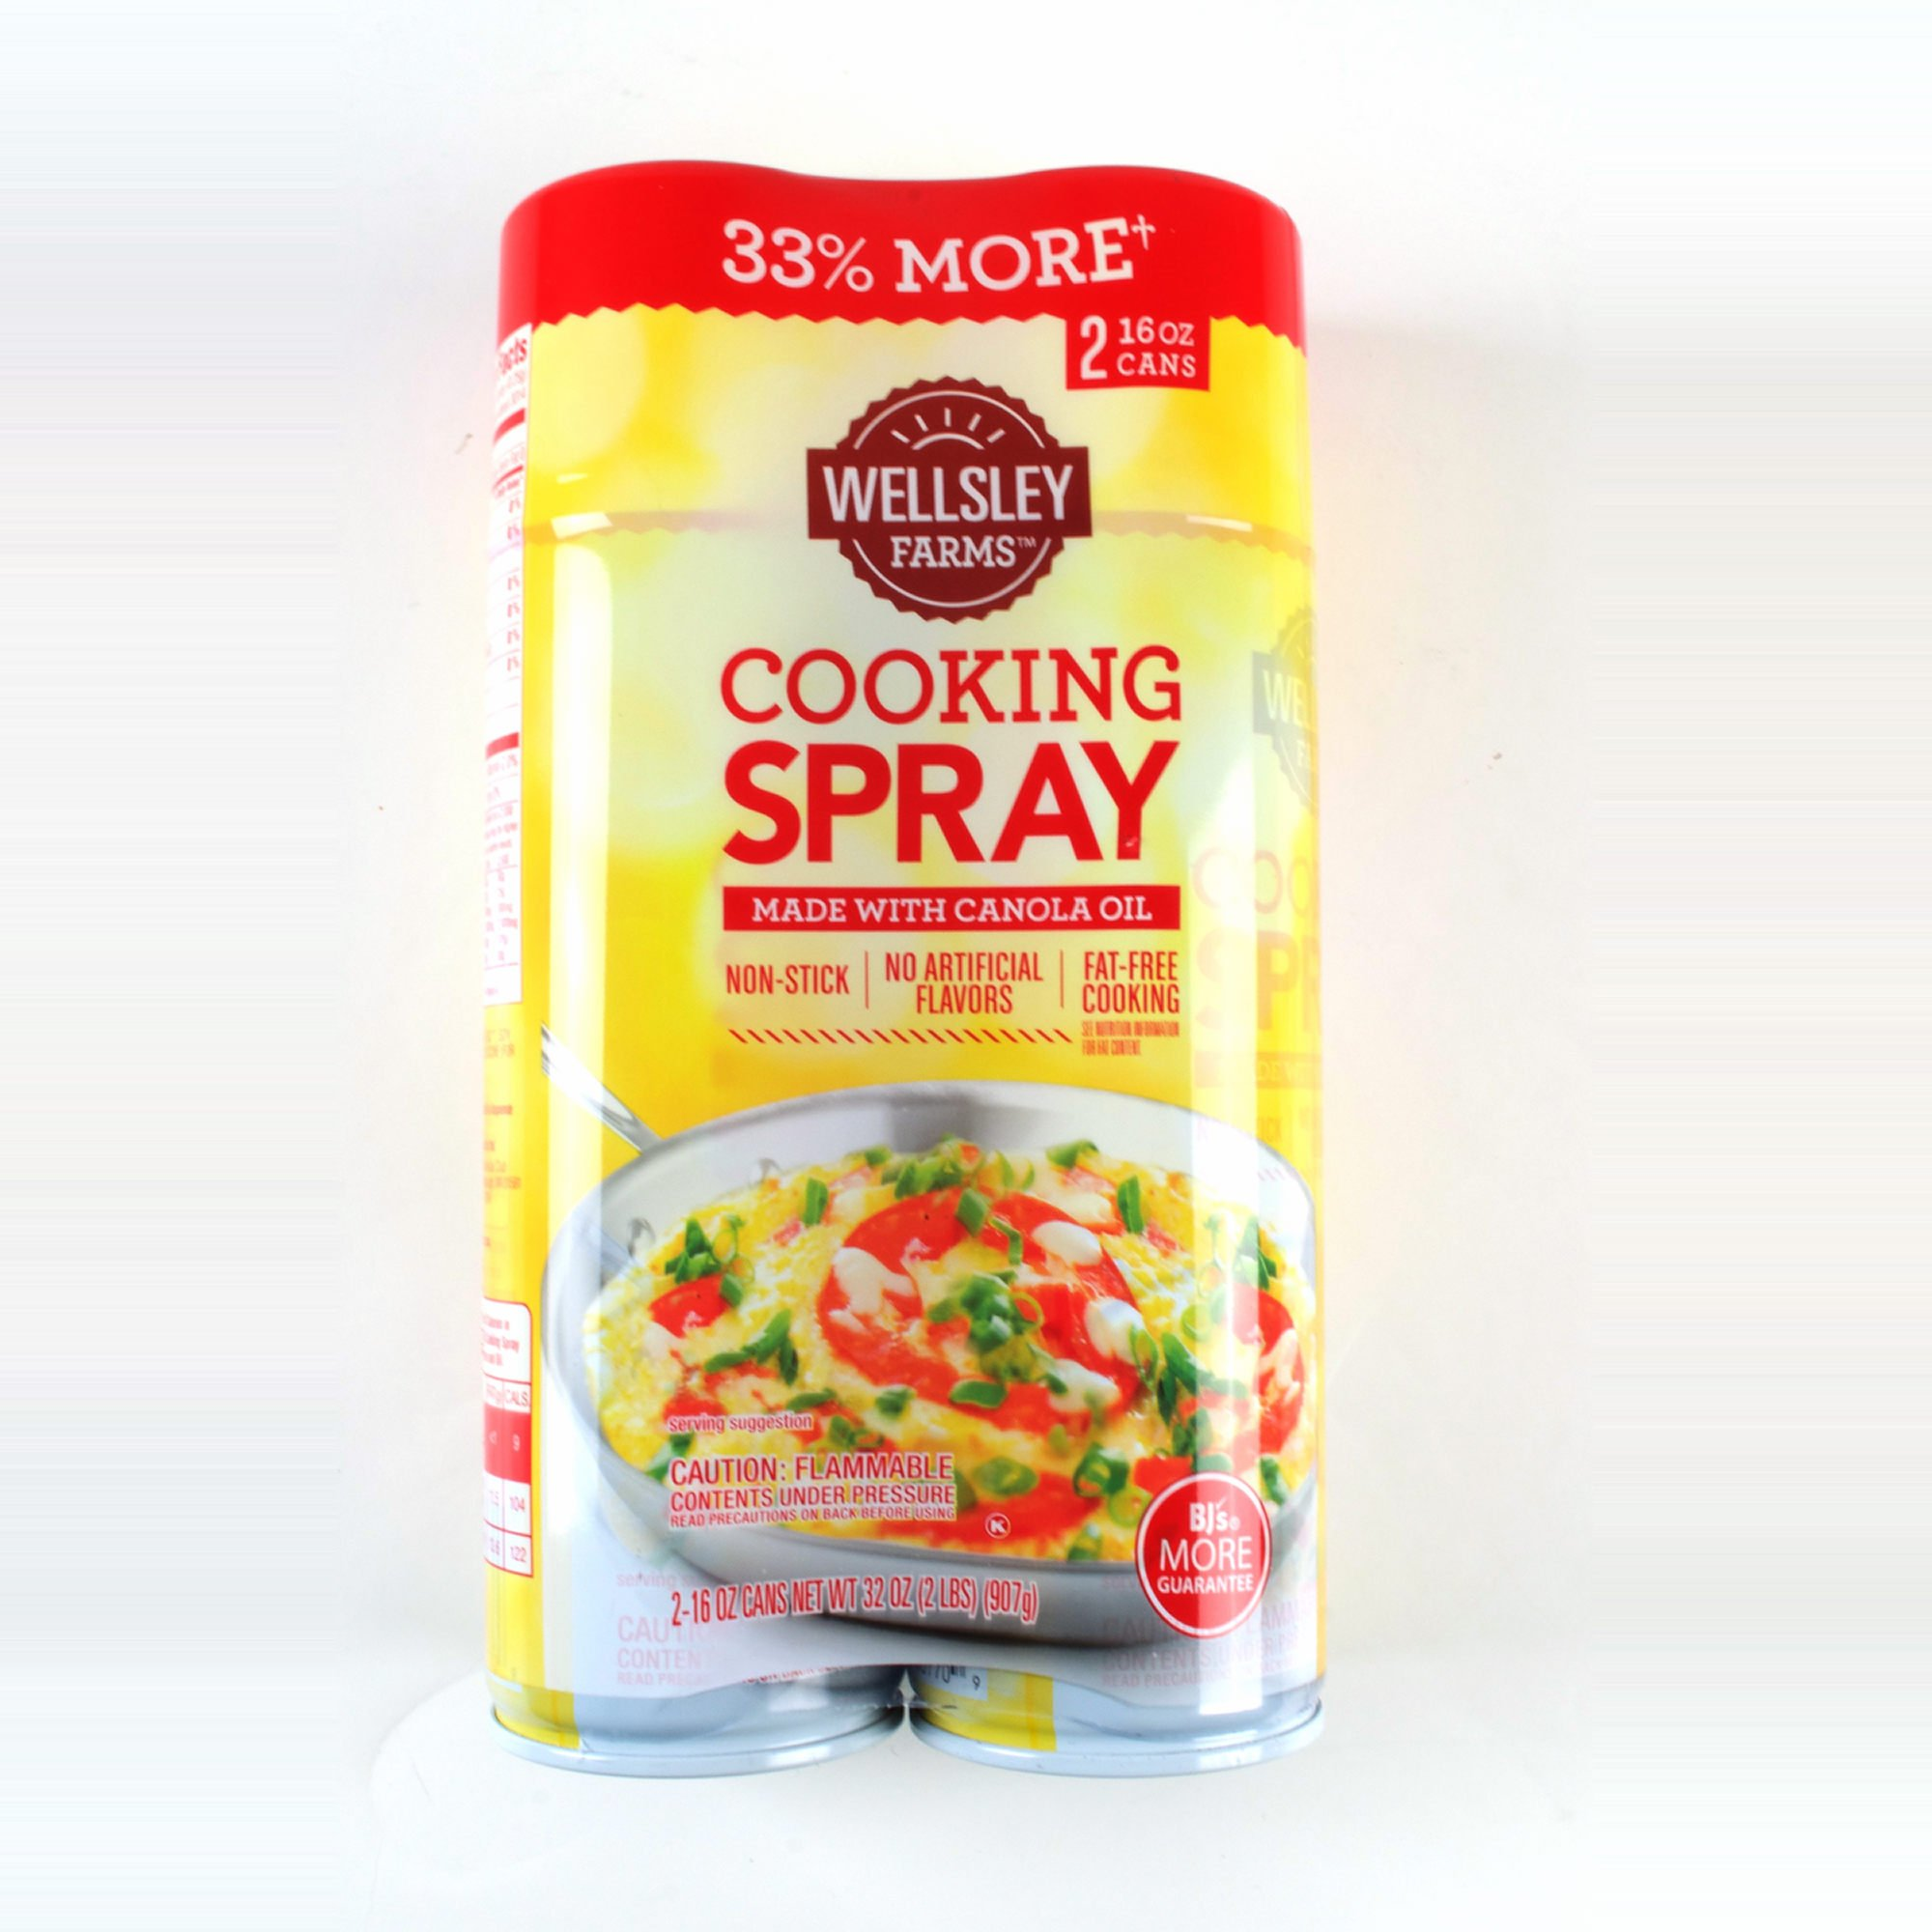 Wellsley Farms Cooking Spray, 2 ct./16 oz. (pack of 6)